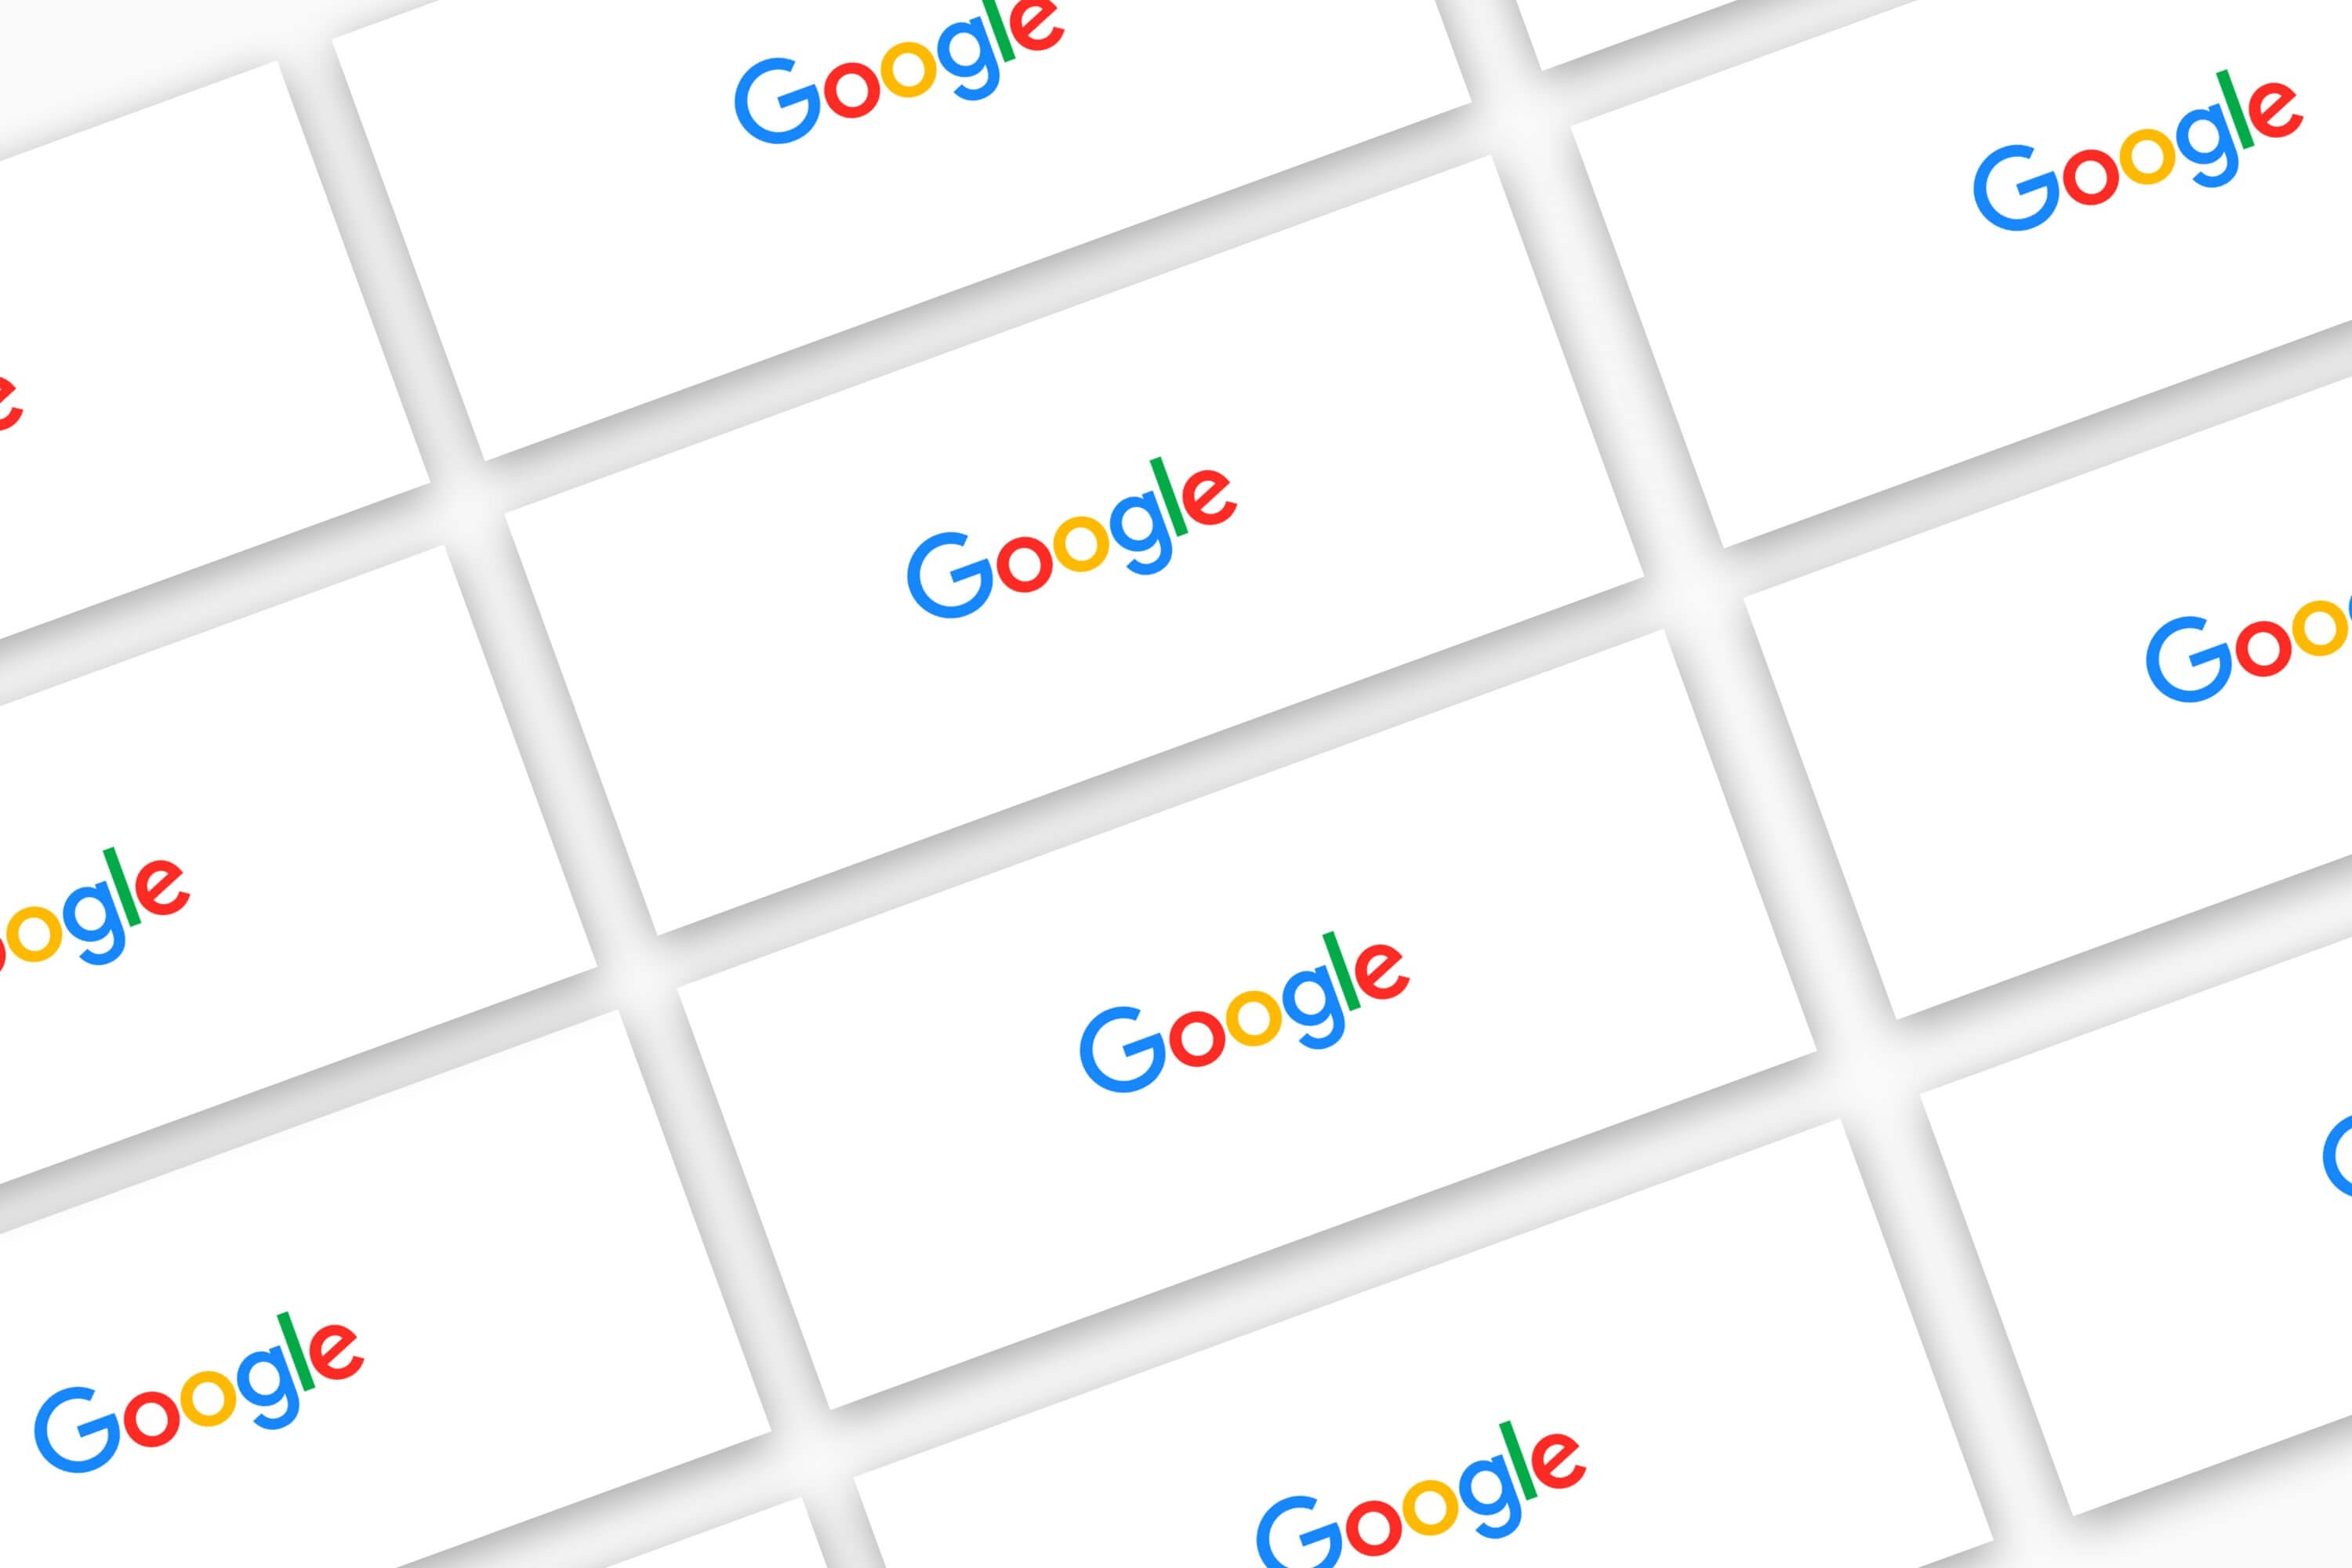 The Google logo repeated several times.